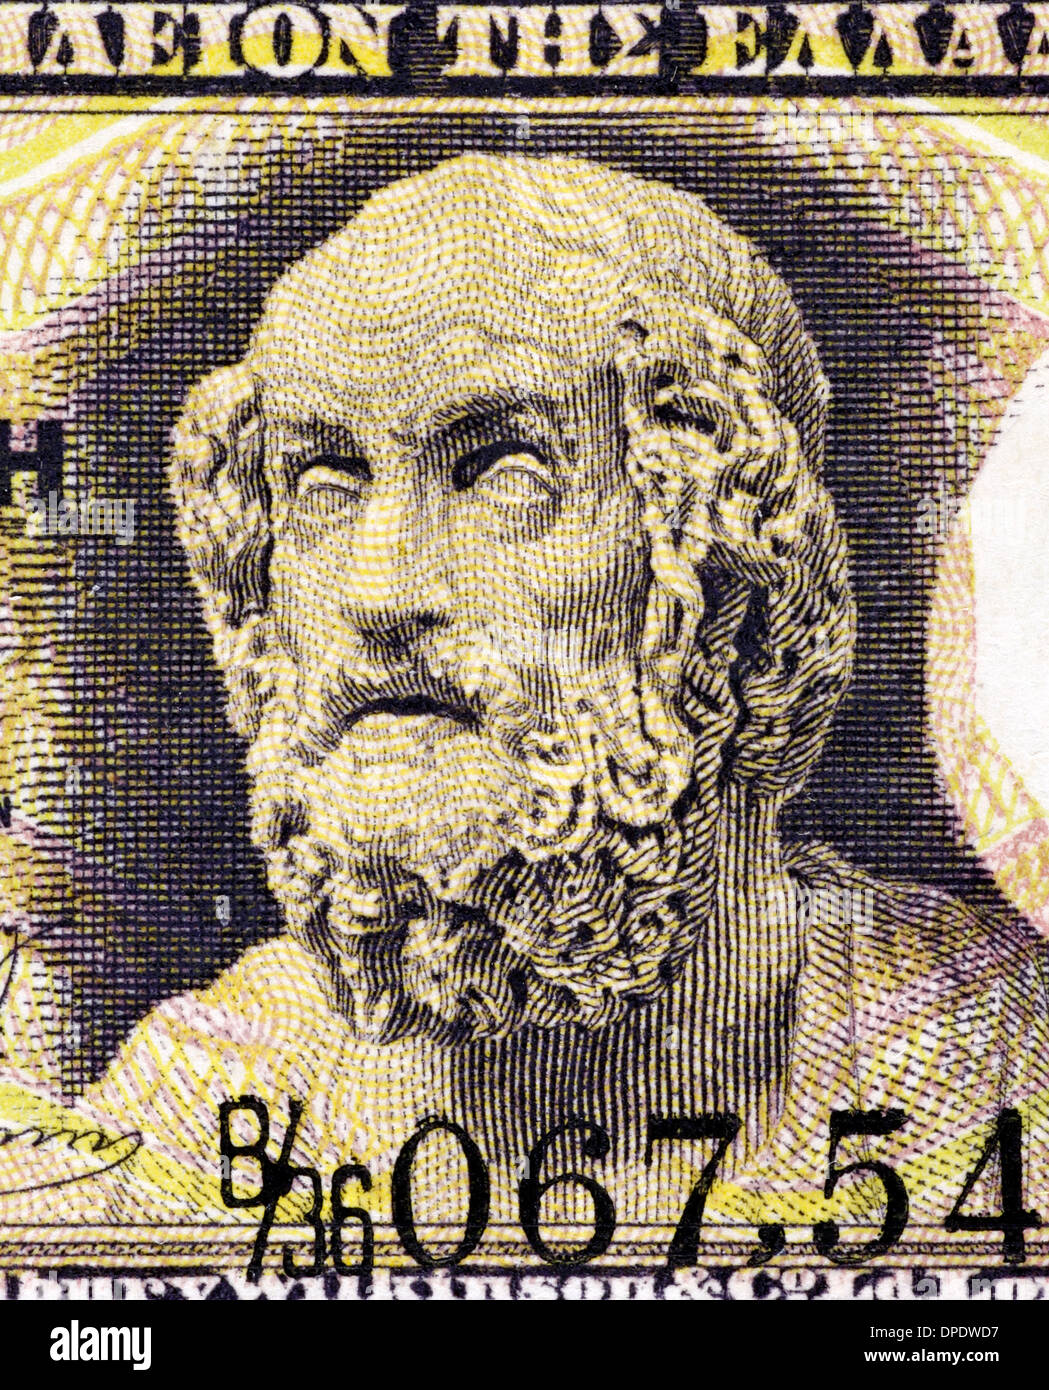 Homer on 1 Drachma 1917 Banknote from Greece. Author of the Iliad and the Odyssey. One of the greatest ancient Greek poets. - Stock Image